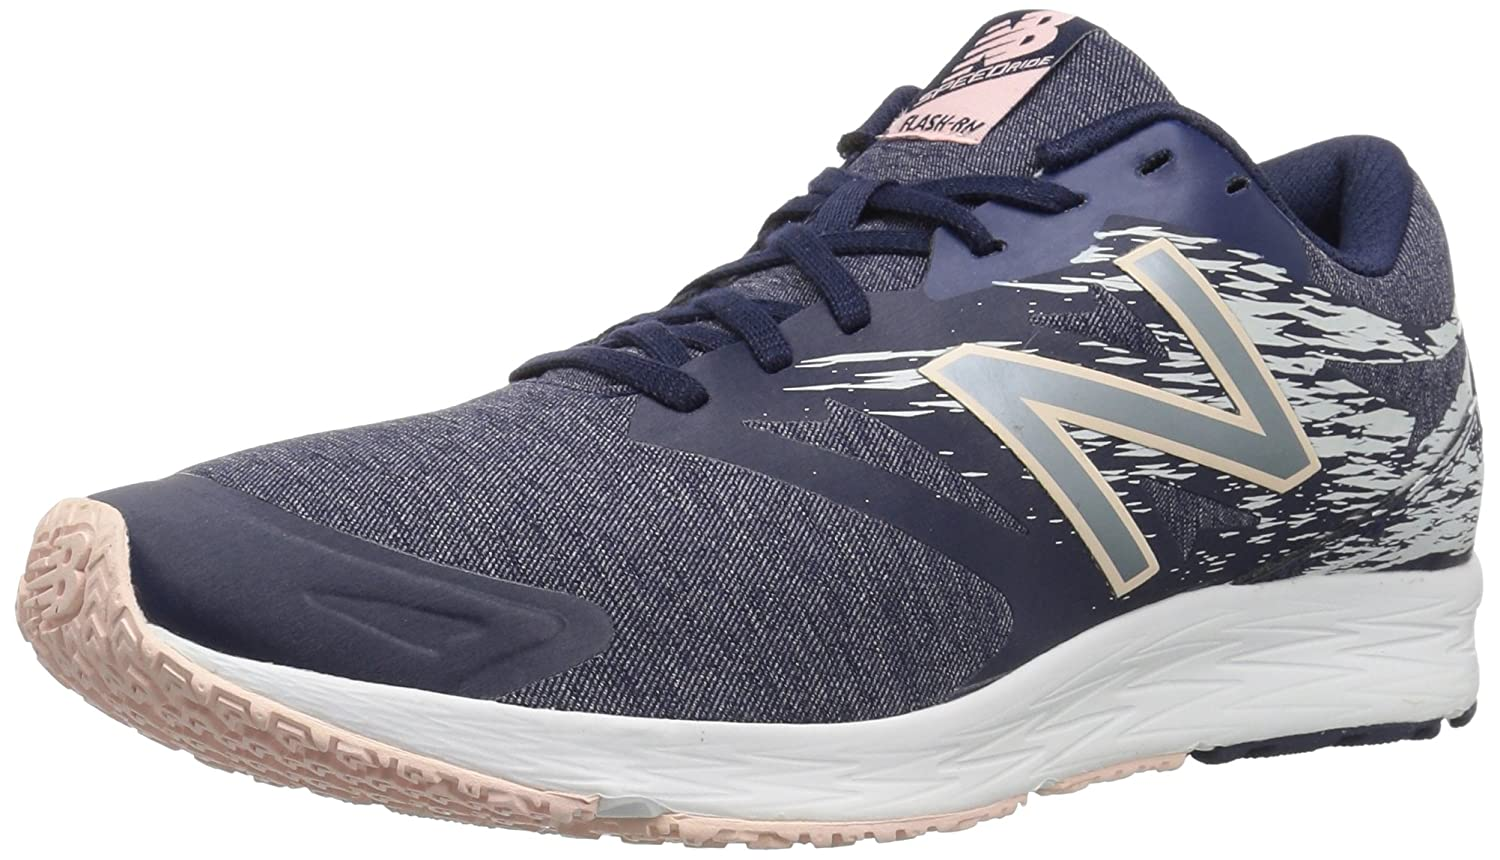 New Balance Shoe Women's Flash V1 Running Shoe Balance B071JM822Y 9 B(M) US|Navy/Silver/Pink c3f66b